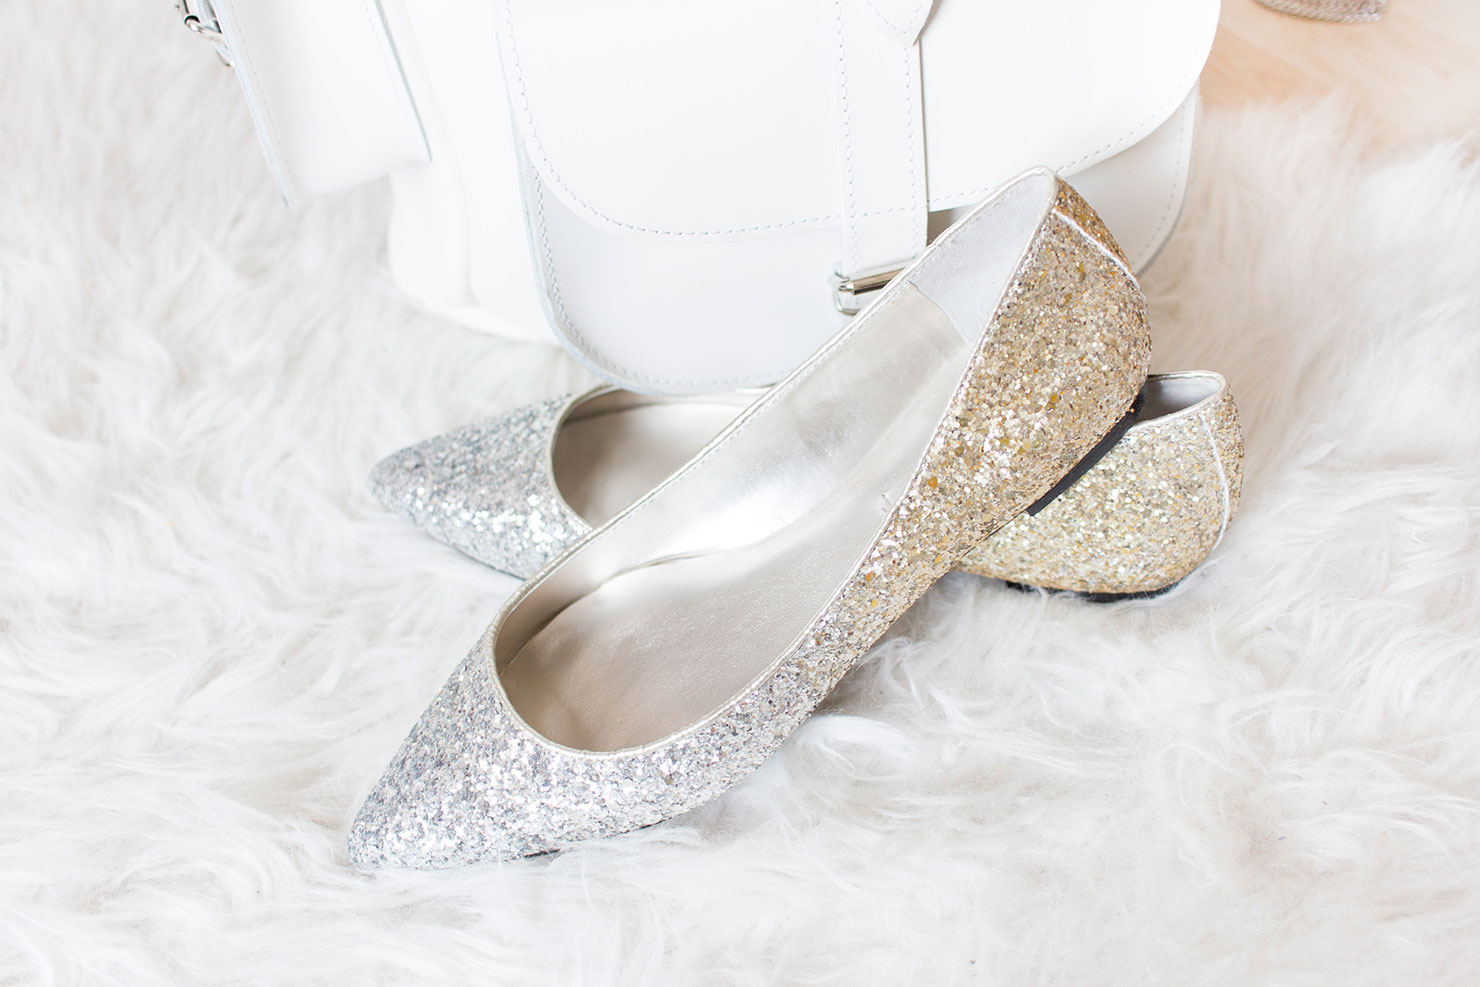 cathy couture zara ballerinas gold glitter